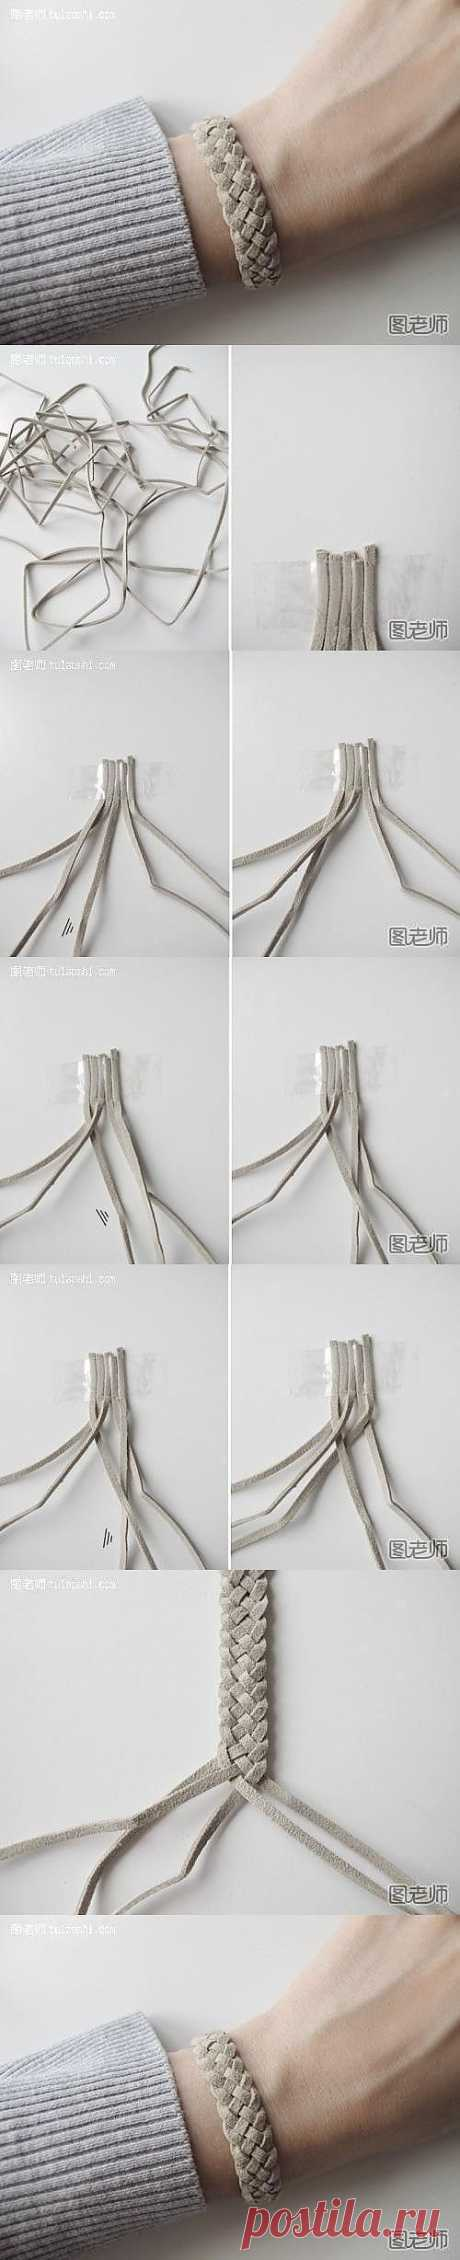 How to make the unique bracelet \/ \/ | by homeLOVEly DIY